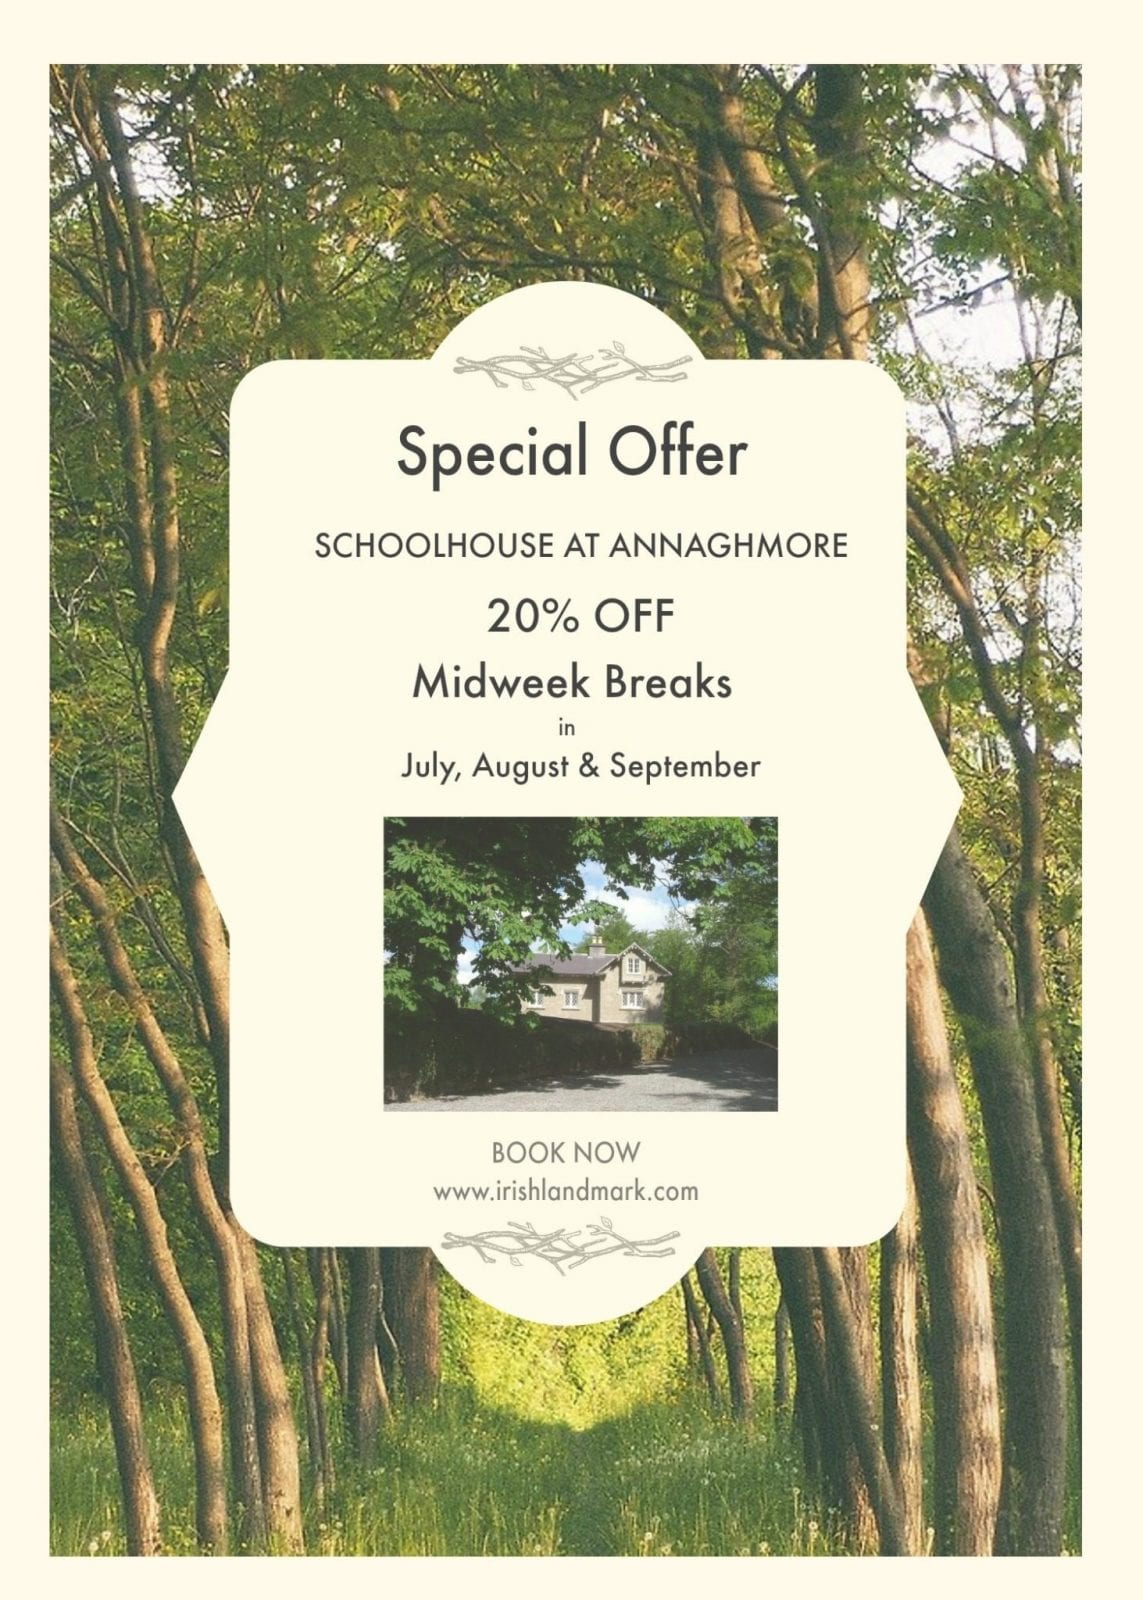 Special Offer for Summer 2017 in Co. Sligo